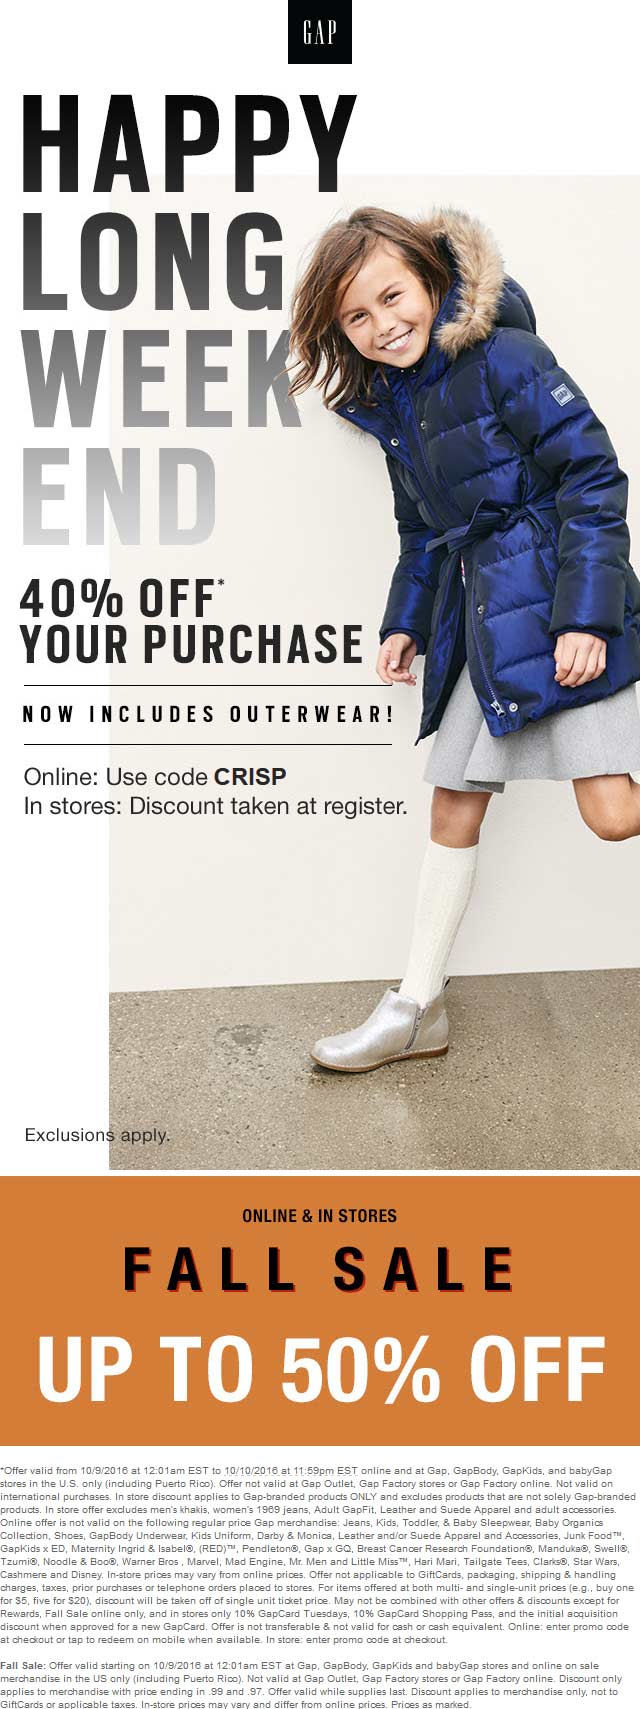 Gap Coupon May 2017 40% off today at Gap, GapBody, GapKids, and babyGap, or online via promo code CRISP